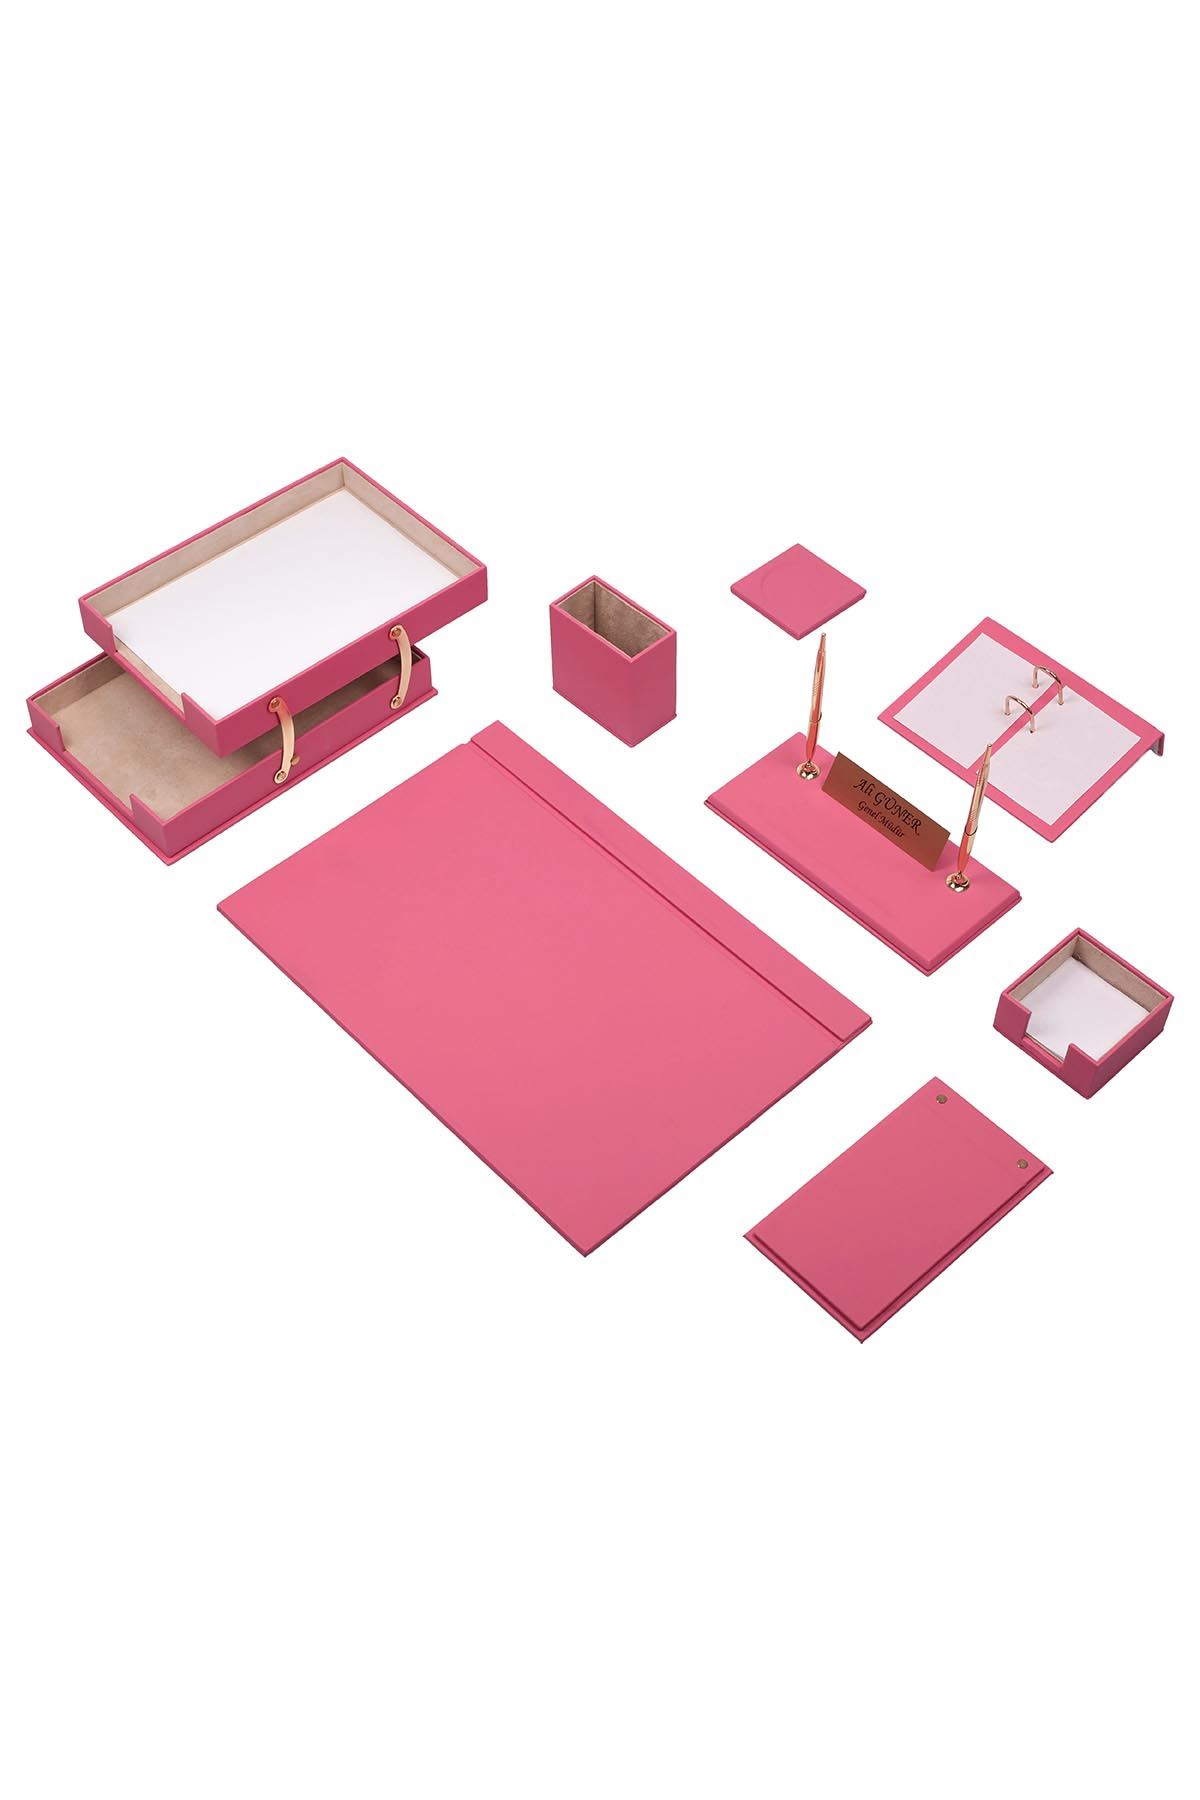 Luxury Leather Desk Set Pink 10 Accessories - Double Document Tray